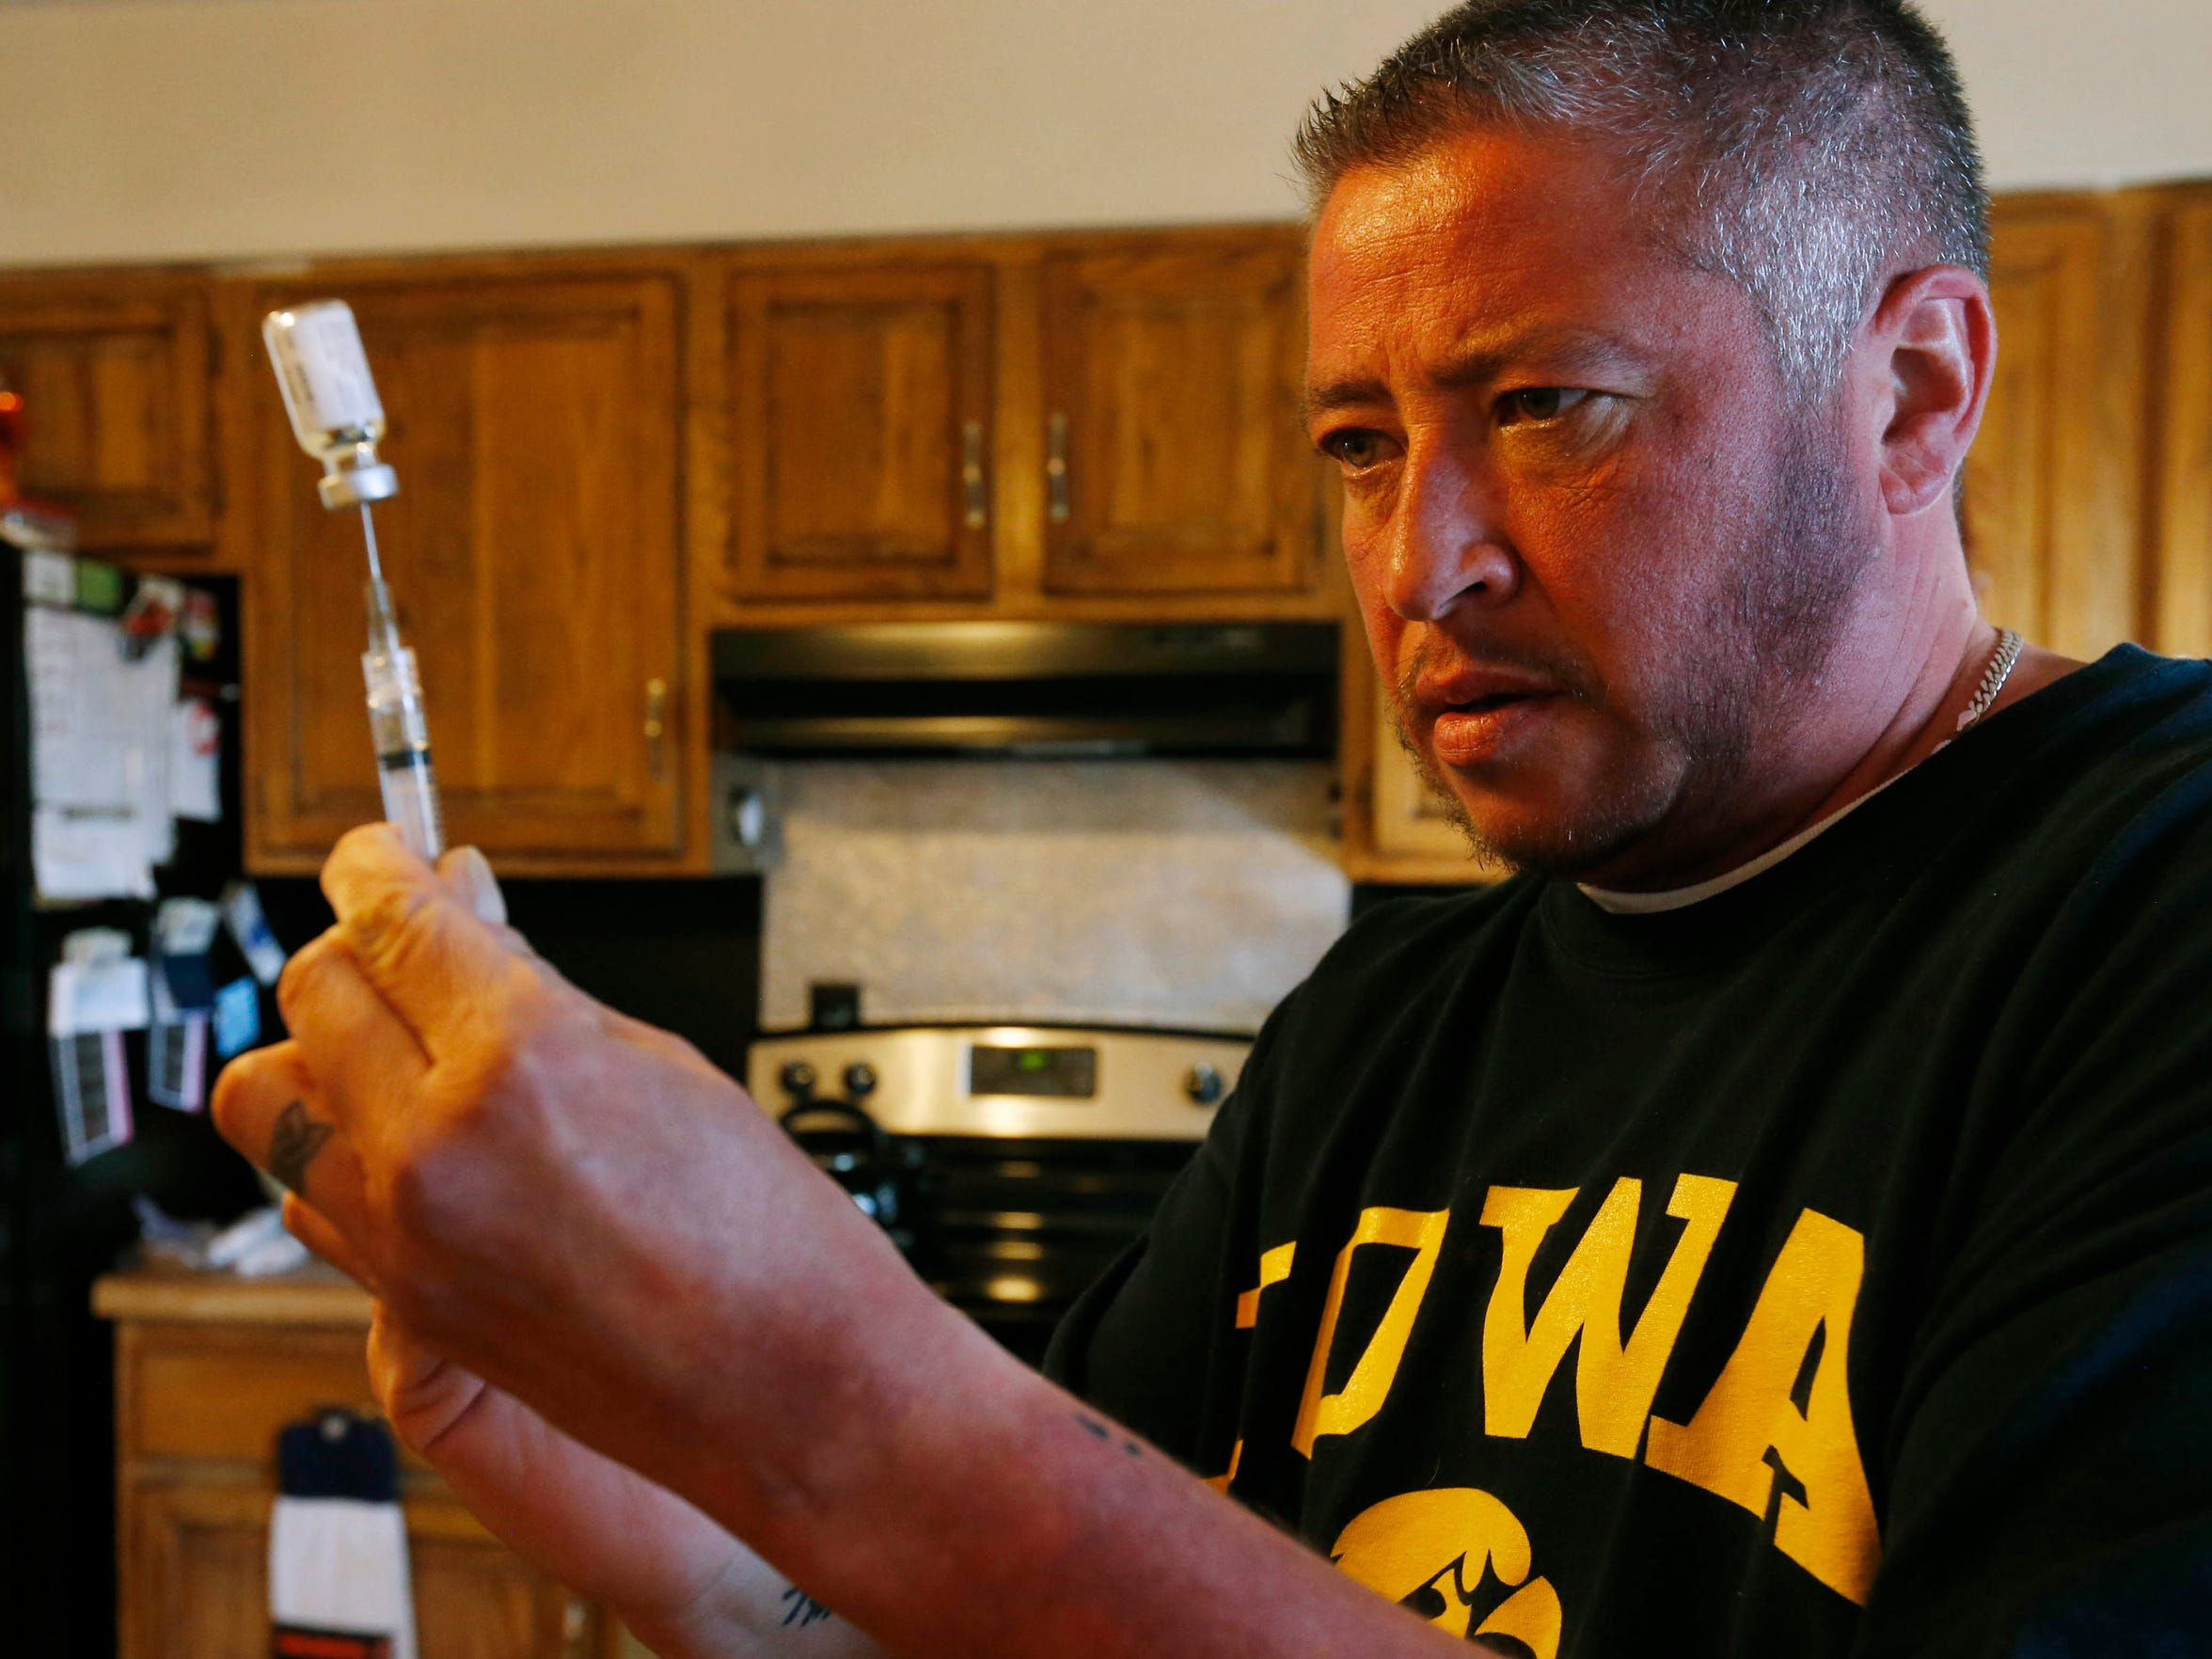 Aiden DeLathower gets ready to inject himself with testosterone Sunday, Nov. 6, 2016, in the kitchen of his home in Davenport.